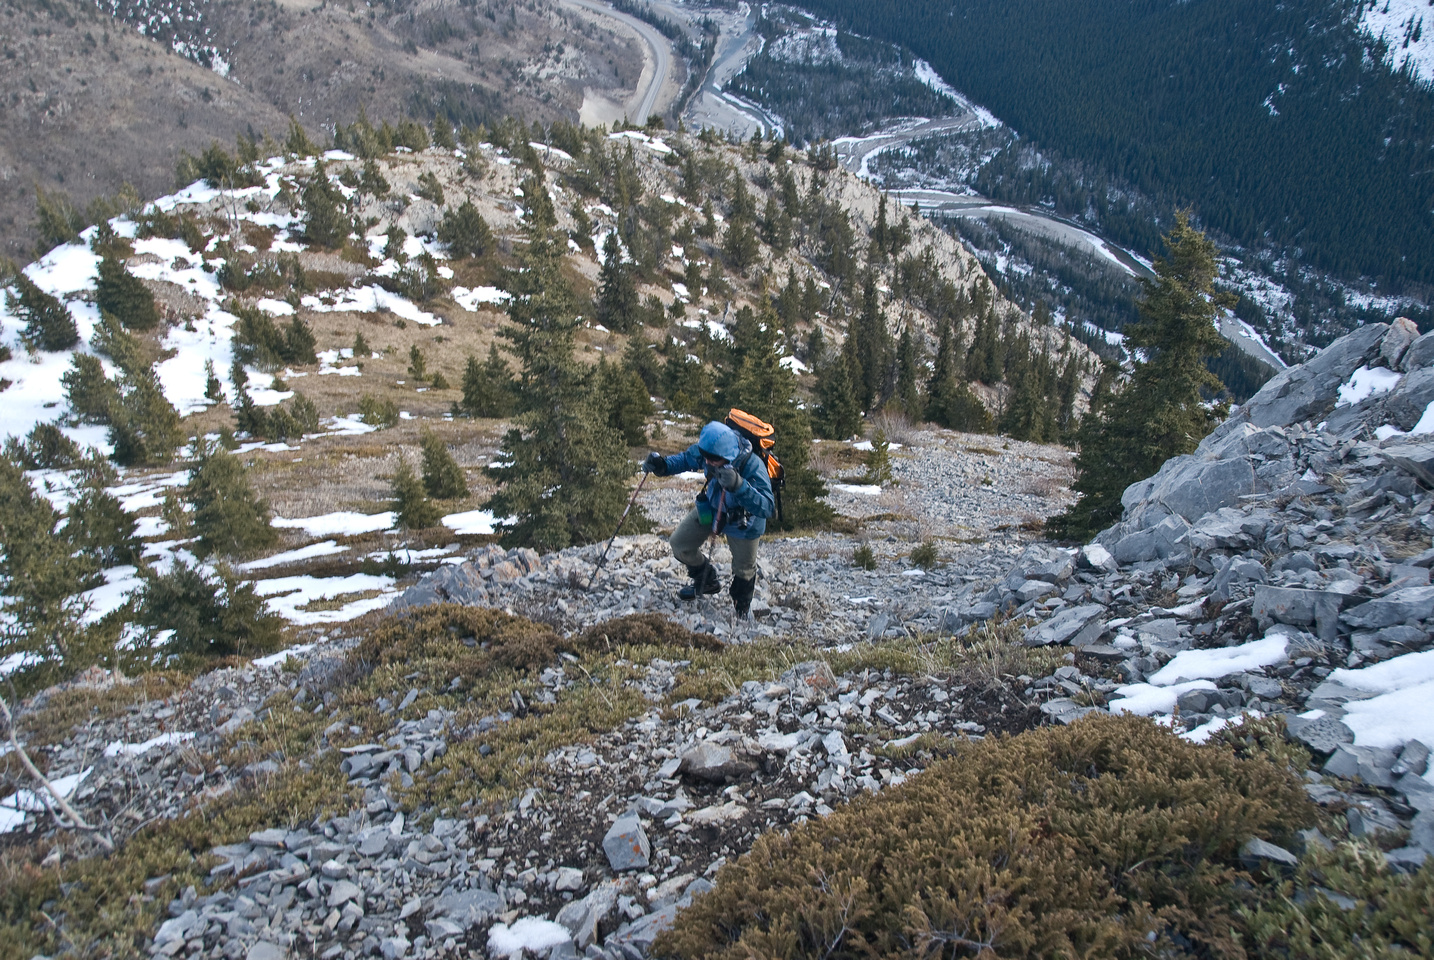 Ascending to the summit.